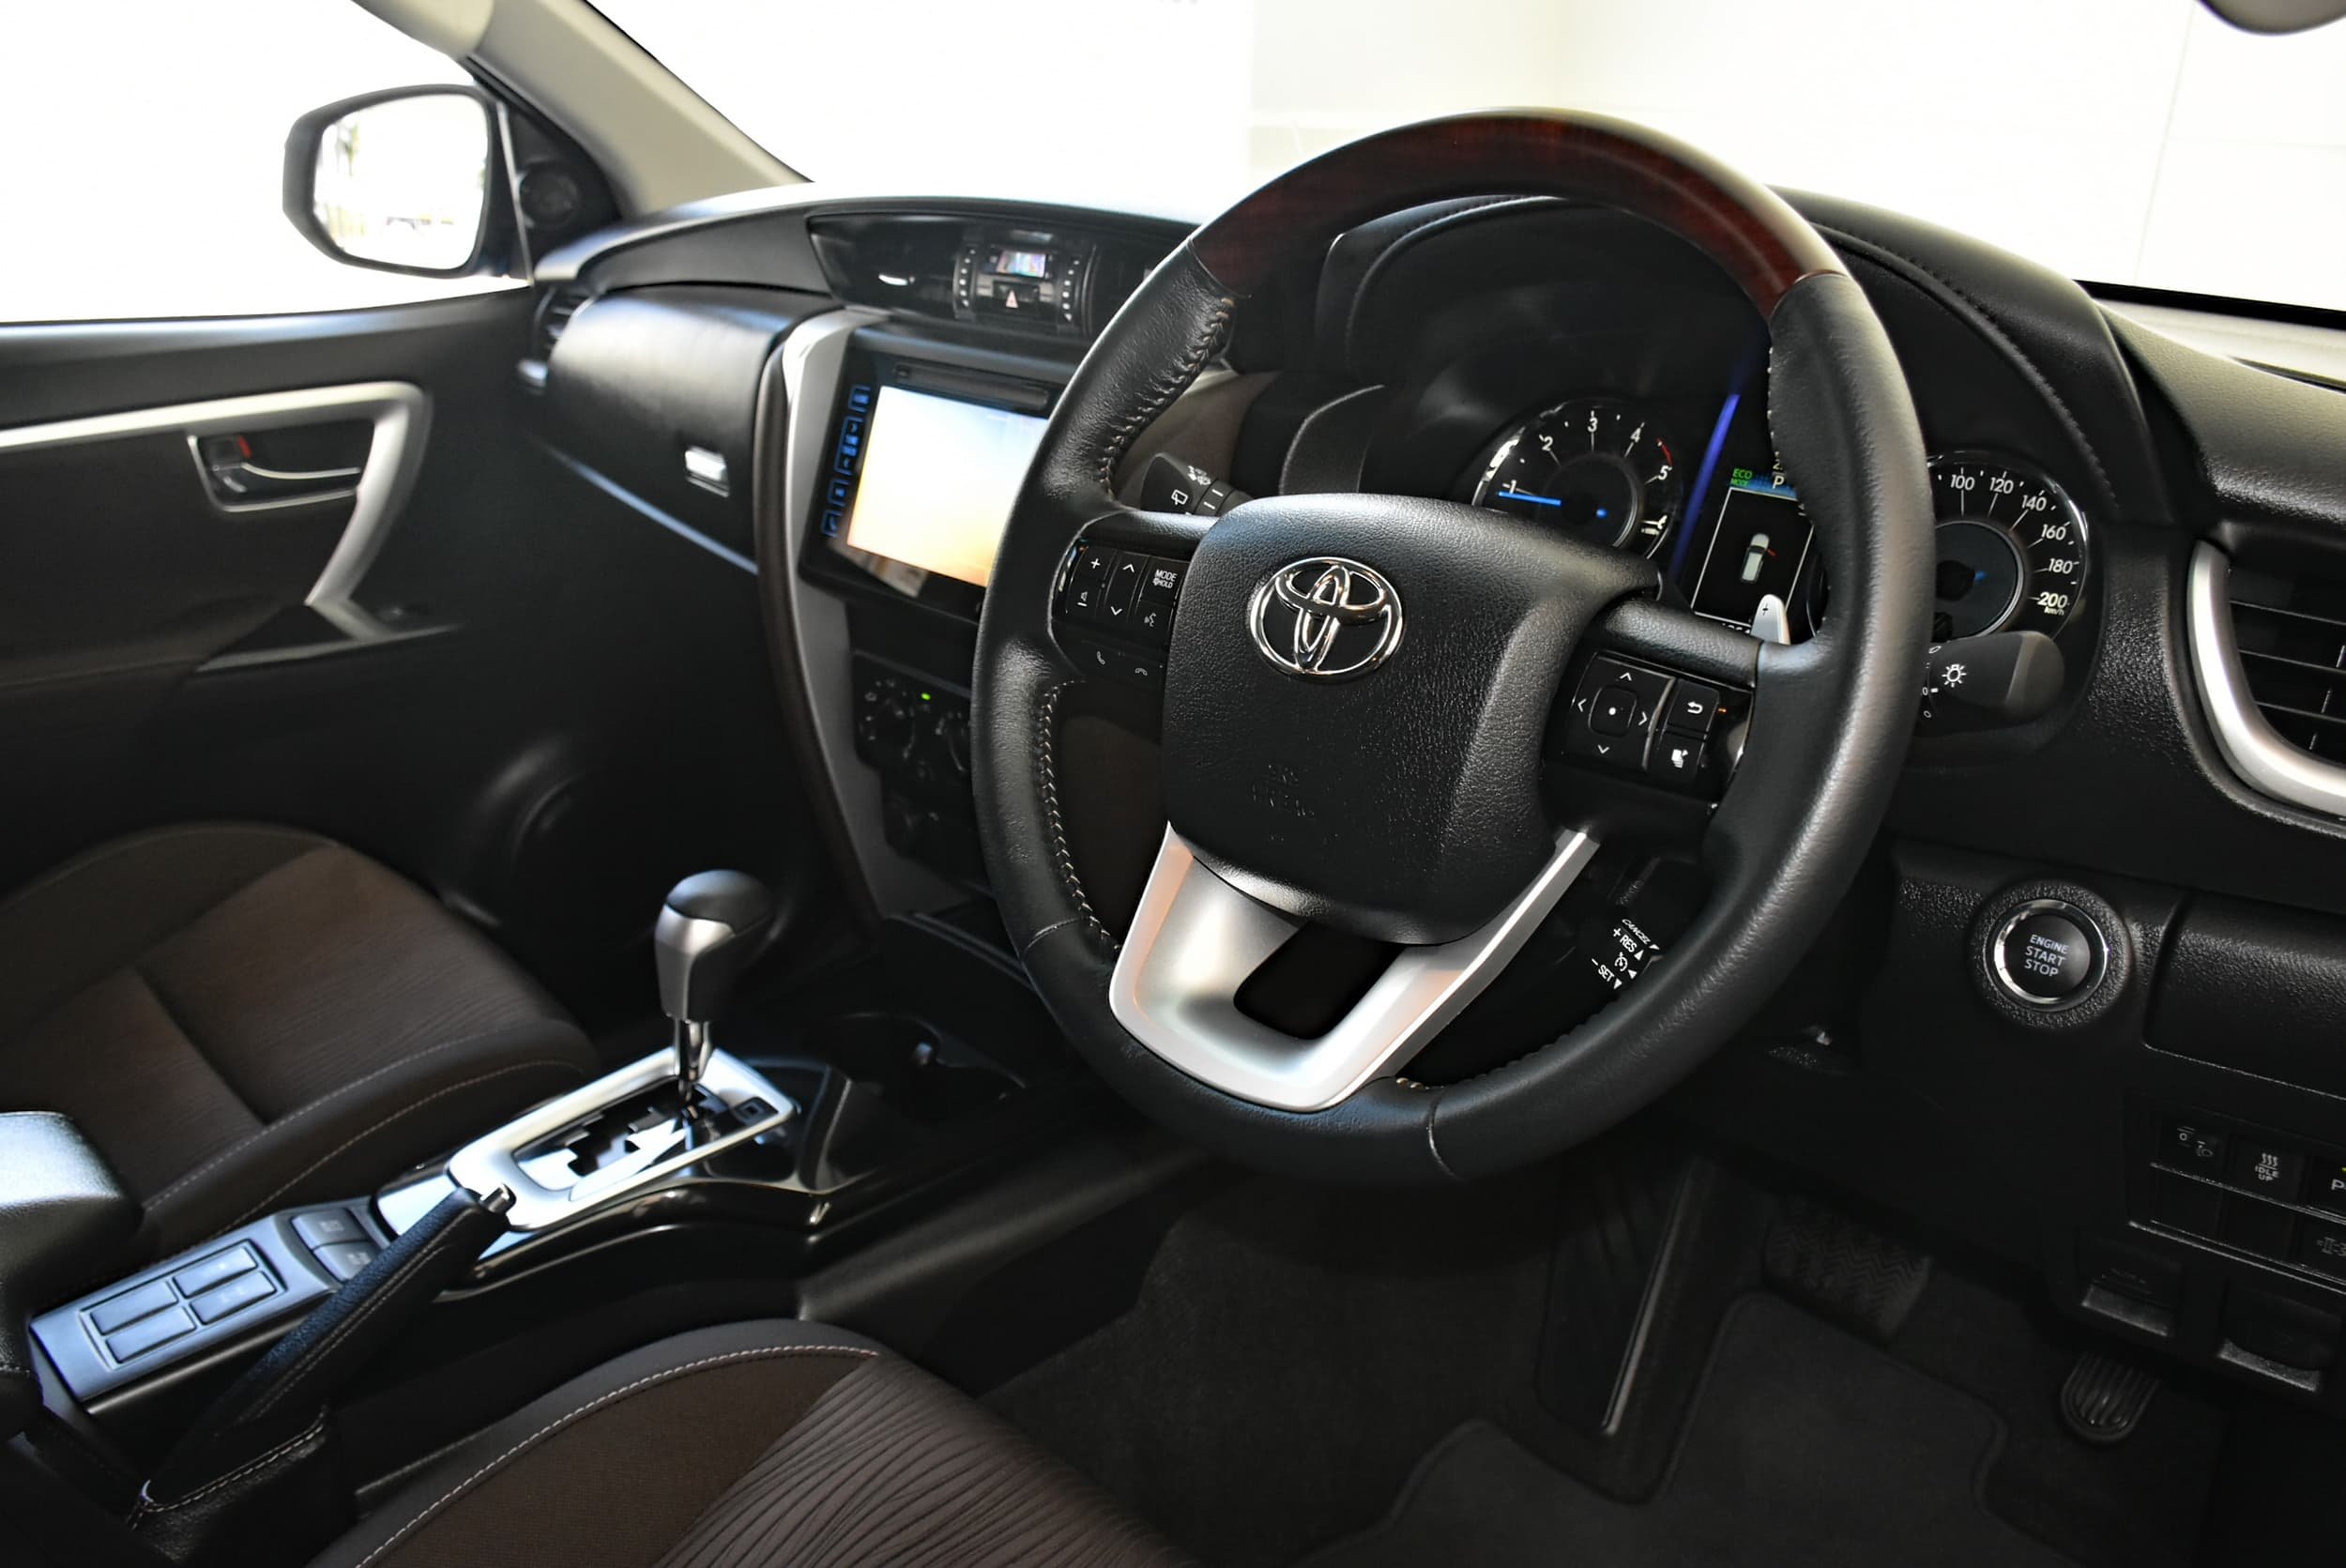 2019 Toyota Fortuner GXL Auto 4x4 - image 7